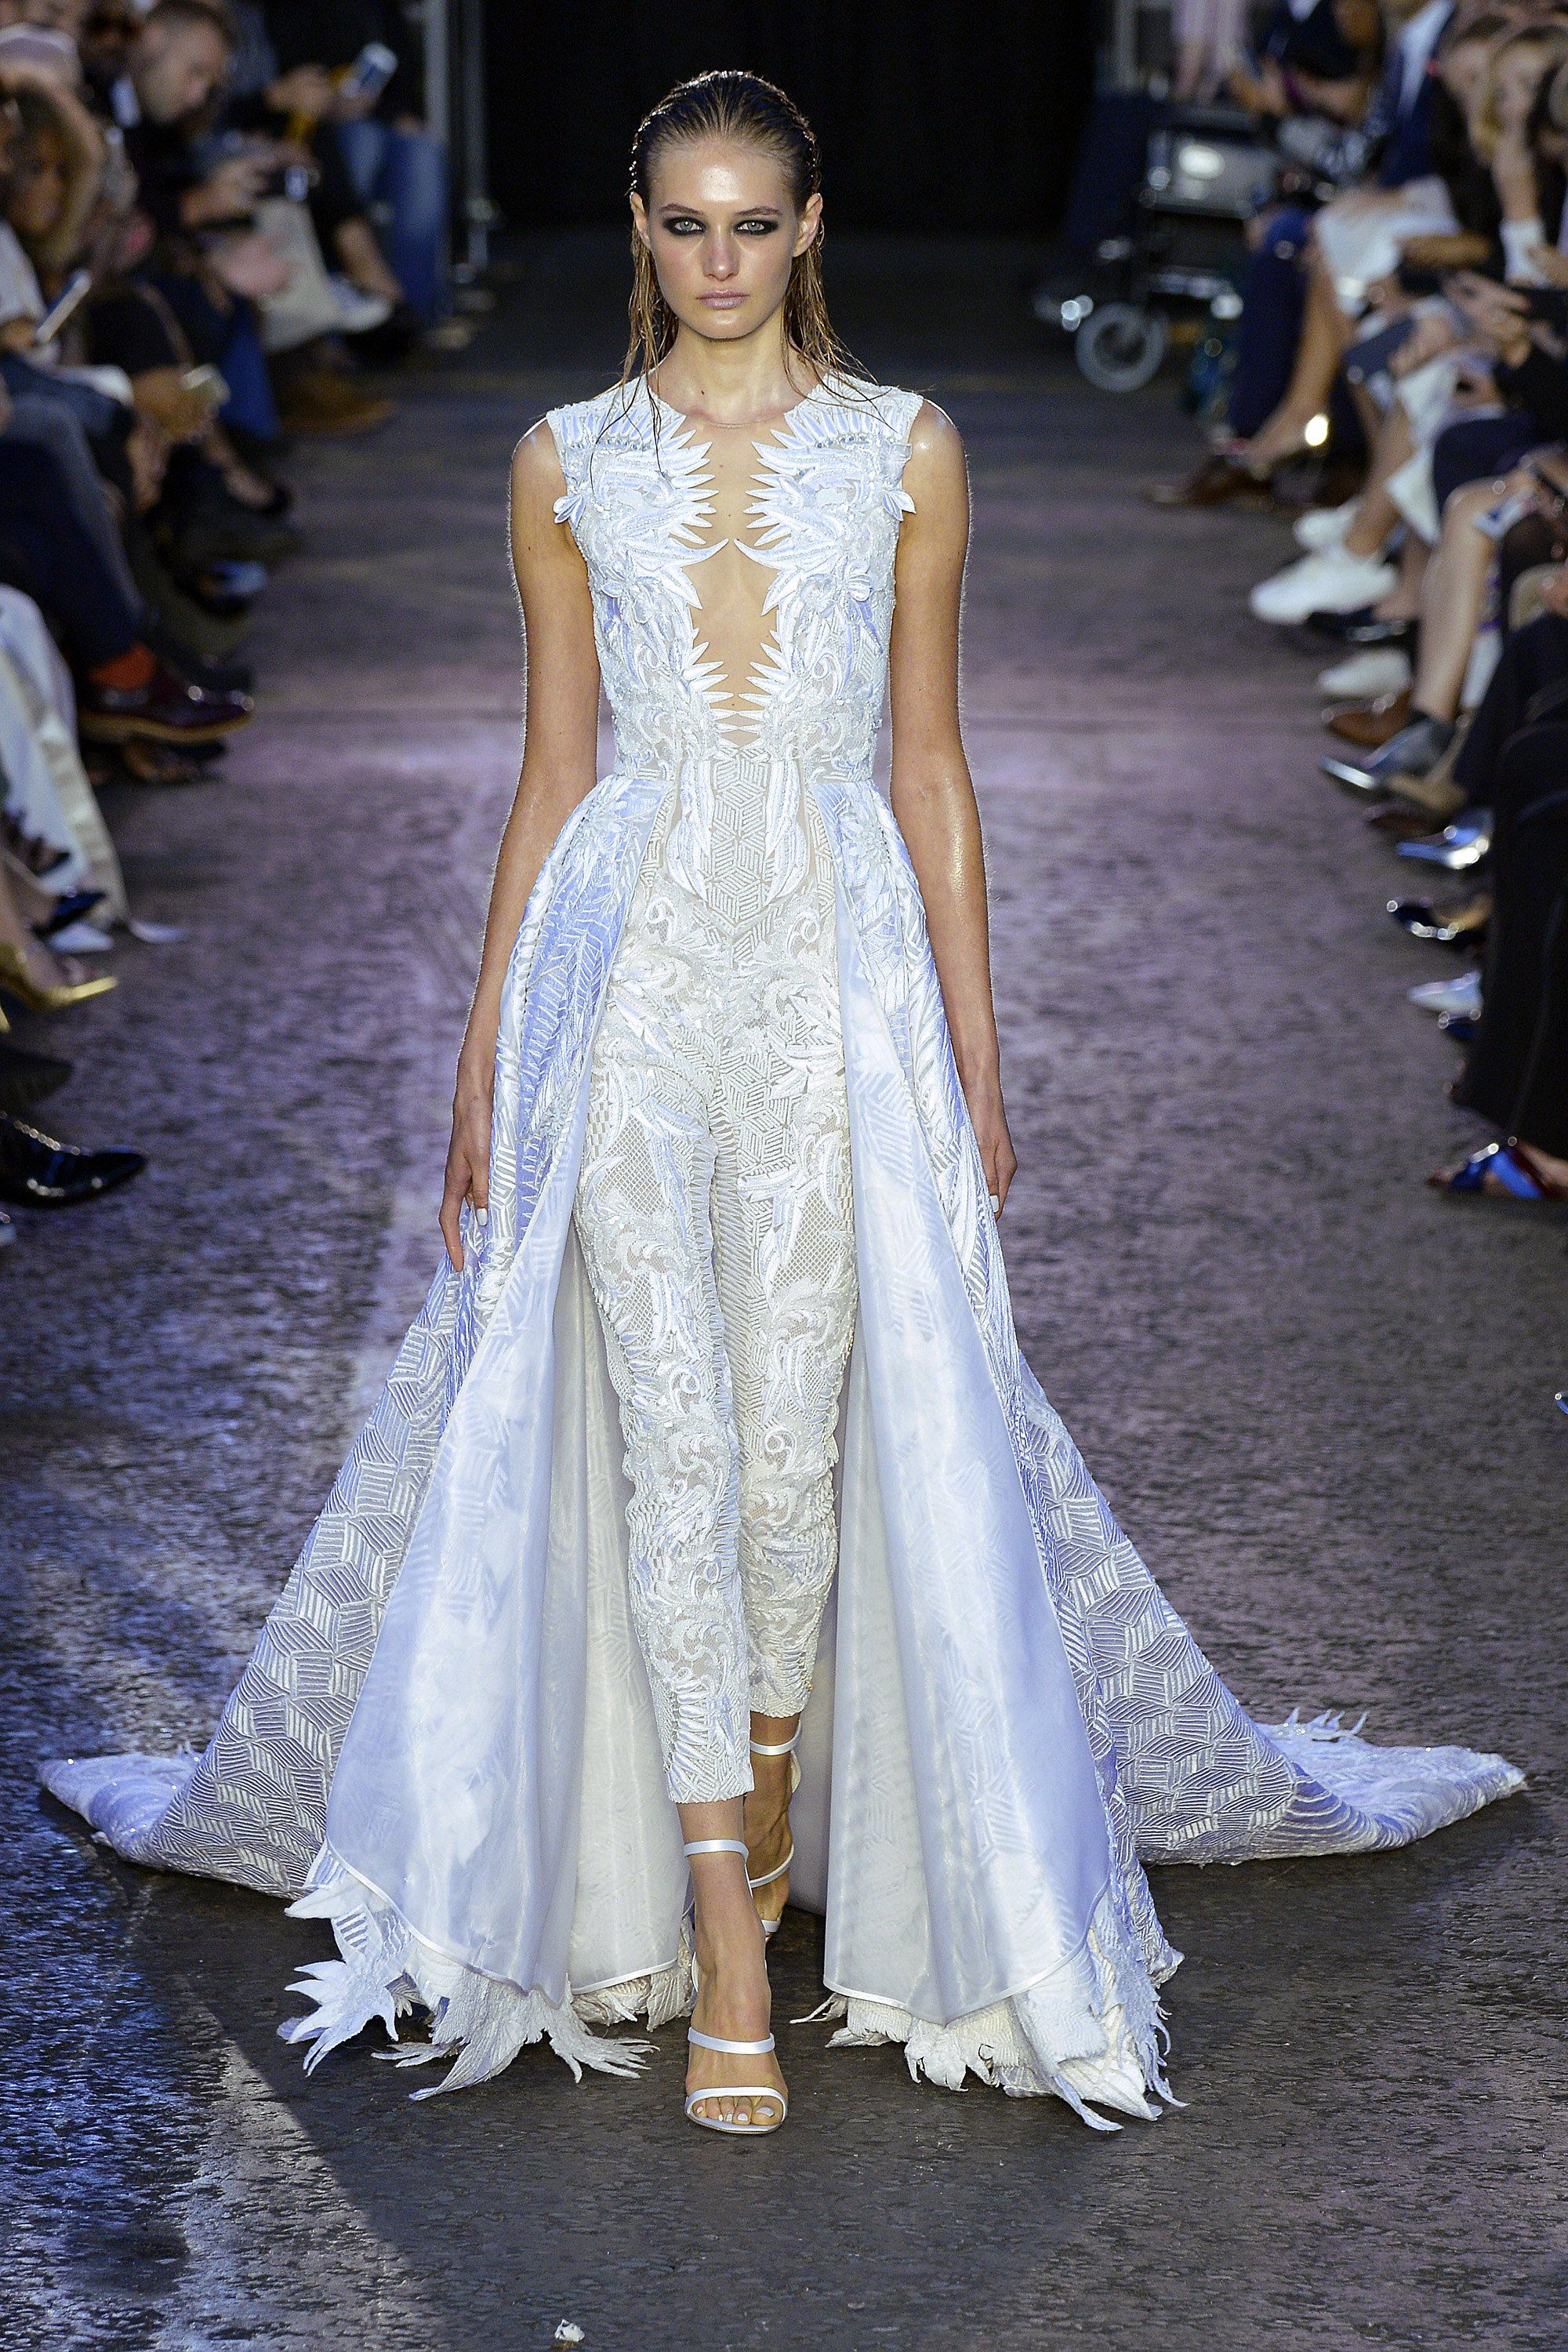 0dbb612175d Bridal Looks From the Spring 2016 Runways Julien Macdonald - Make an  entrance and an exit to remember in this jumpsuit ensemble with built-in  train.